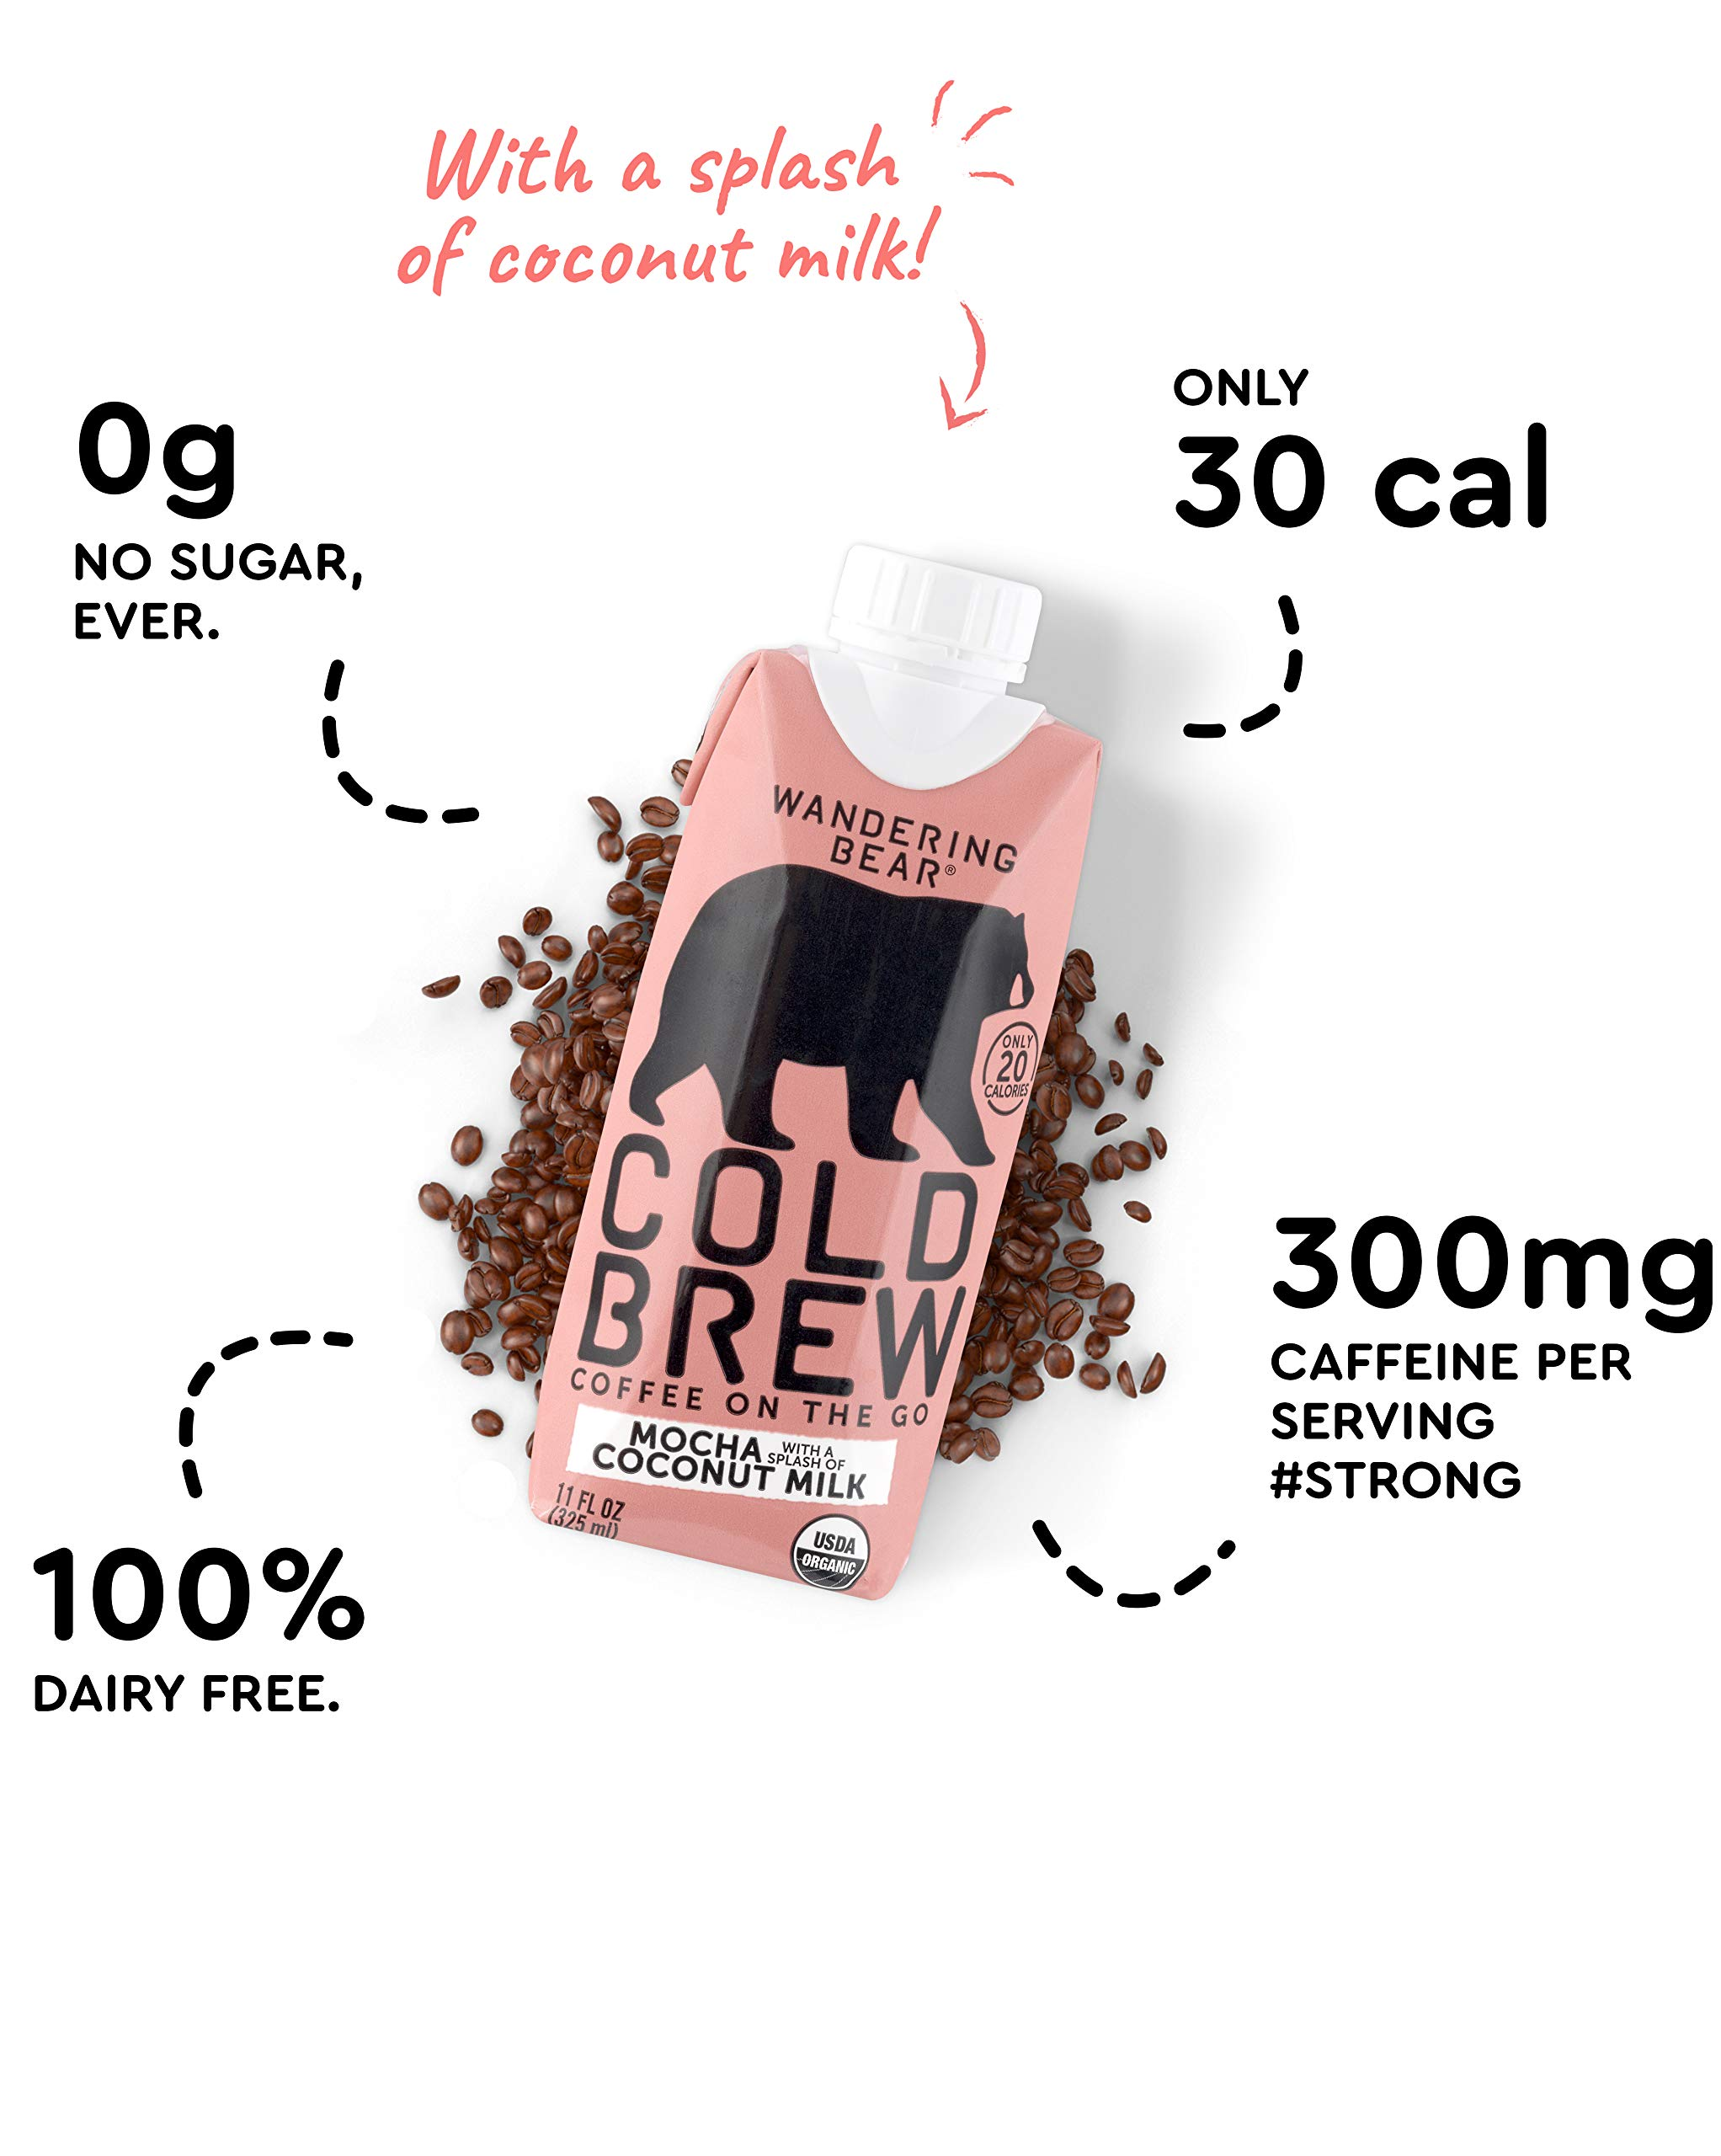 Wandering Bear Organic Cold Brew Coffee On-the-Go 11 oz Carton, Mocha With Splash of Coconut Milk, No Sugar, Ready to Drink, Not a Concentrate (Pack of 12) by Wandering Bear (Image #5)